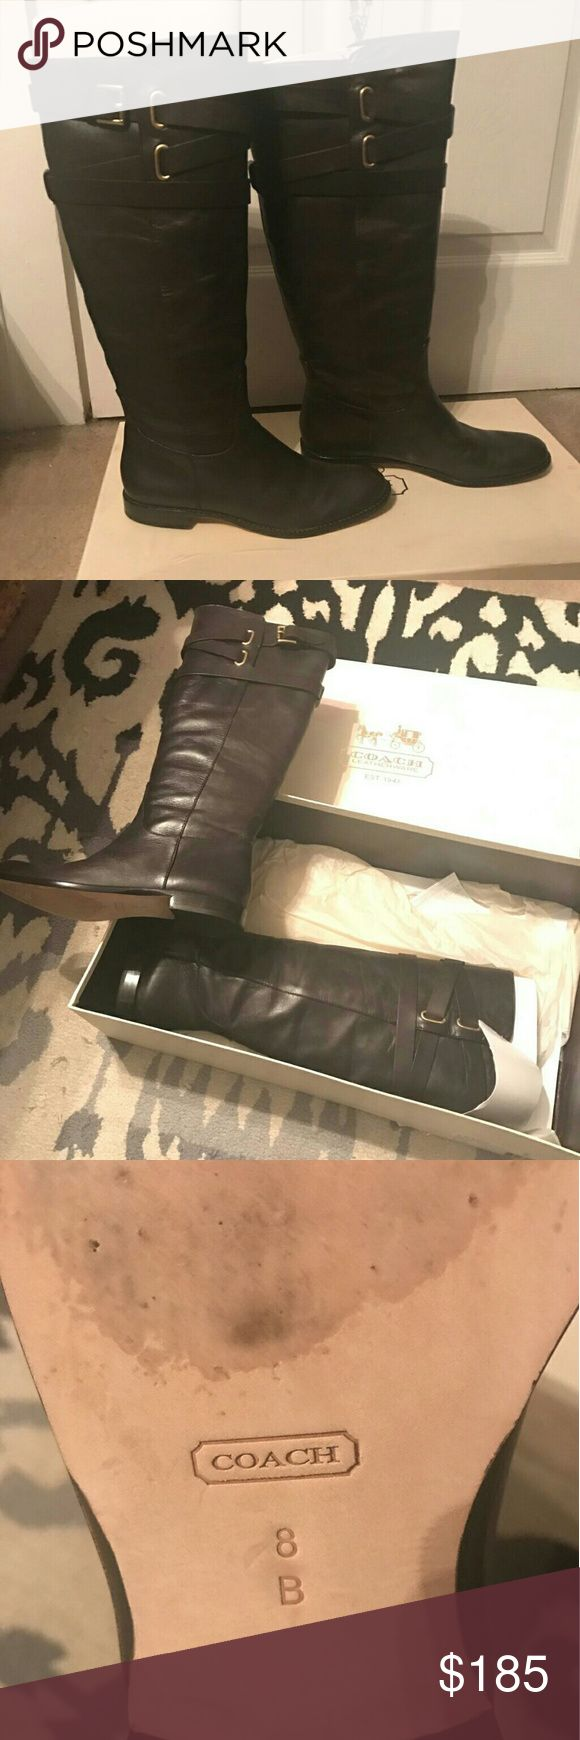 Coach Boots Tall Coach boots in Cayden Chestnut brown smooth nappa leather. Size 8M. Excellent condition, worn once, no scuffs, paid $295 + tax, make an offer:) Coach Shoes Over the Knee Boots